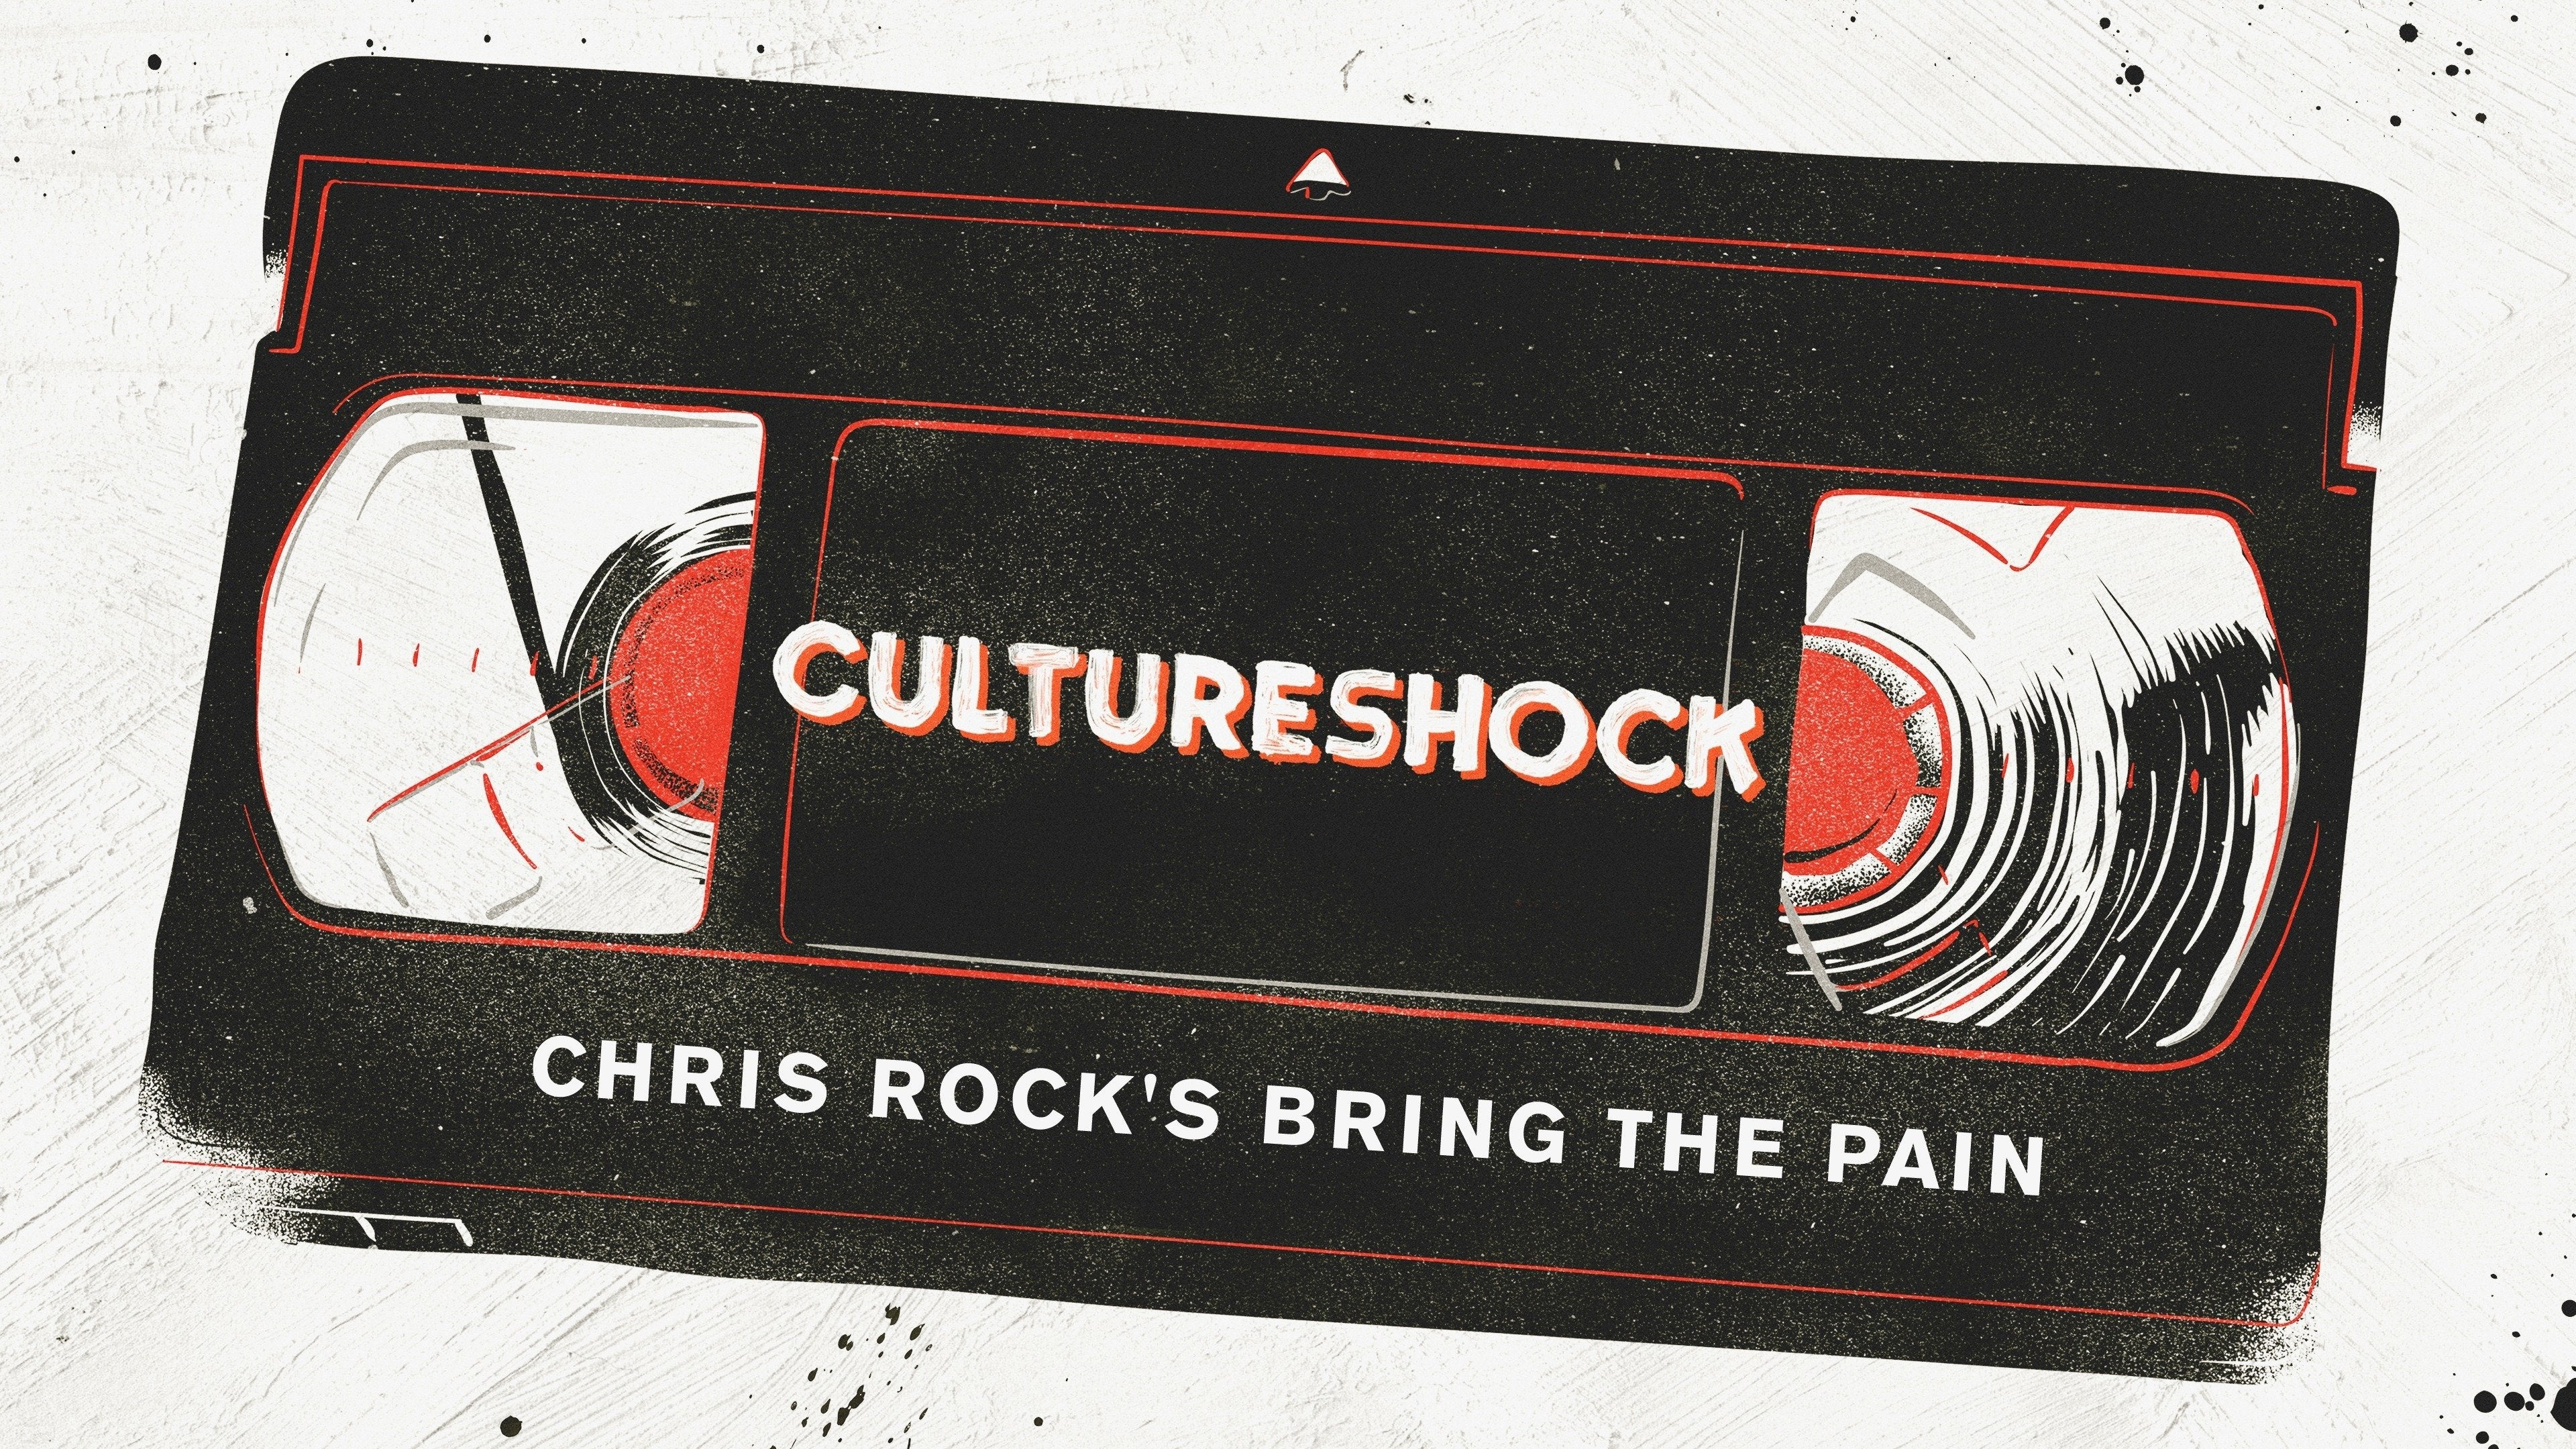 Cultureshock: Chris Rock's Bring the Pain